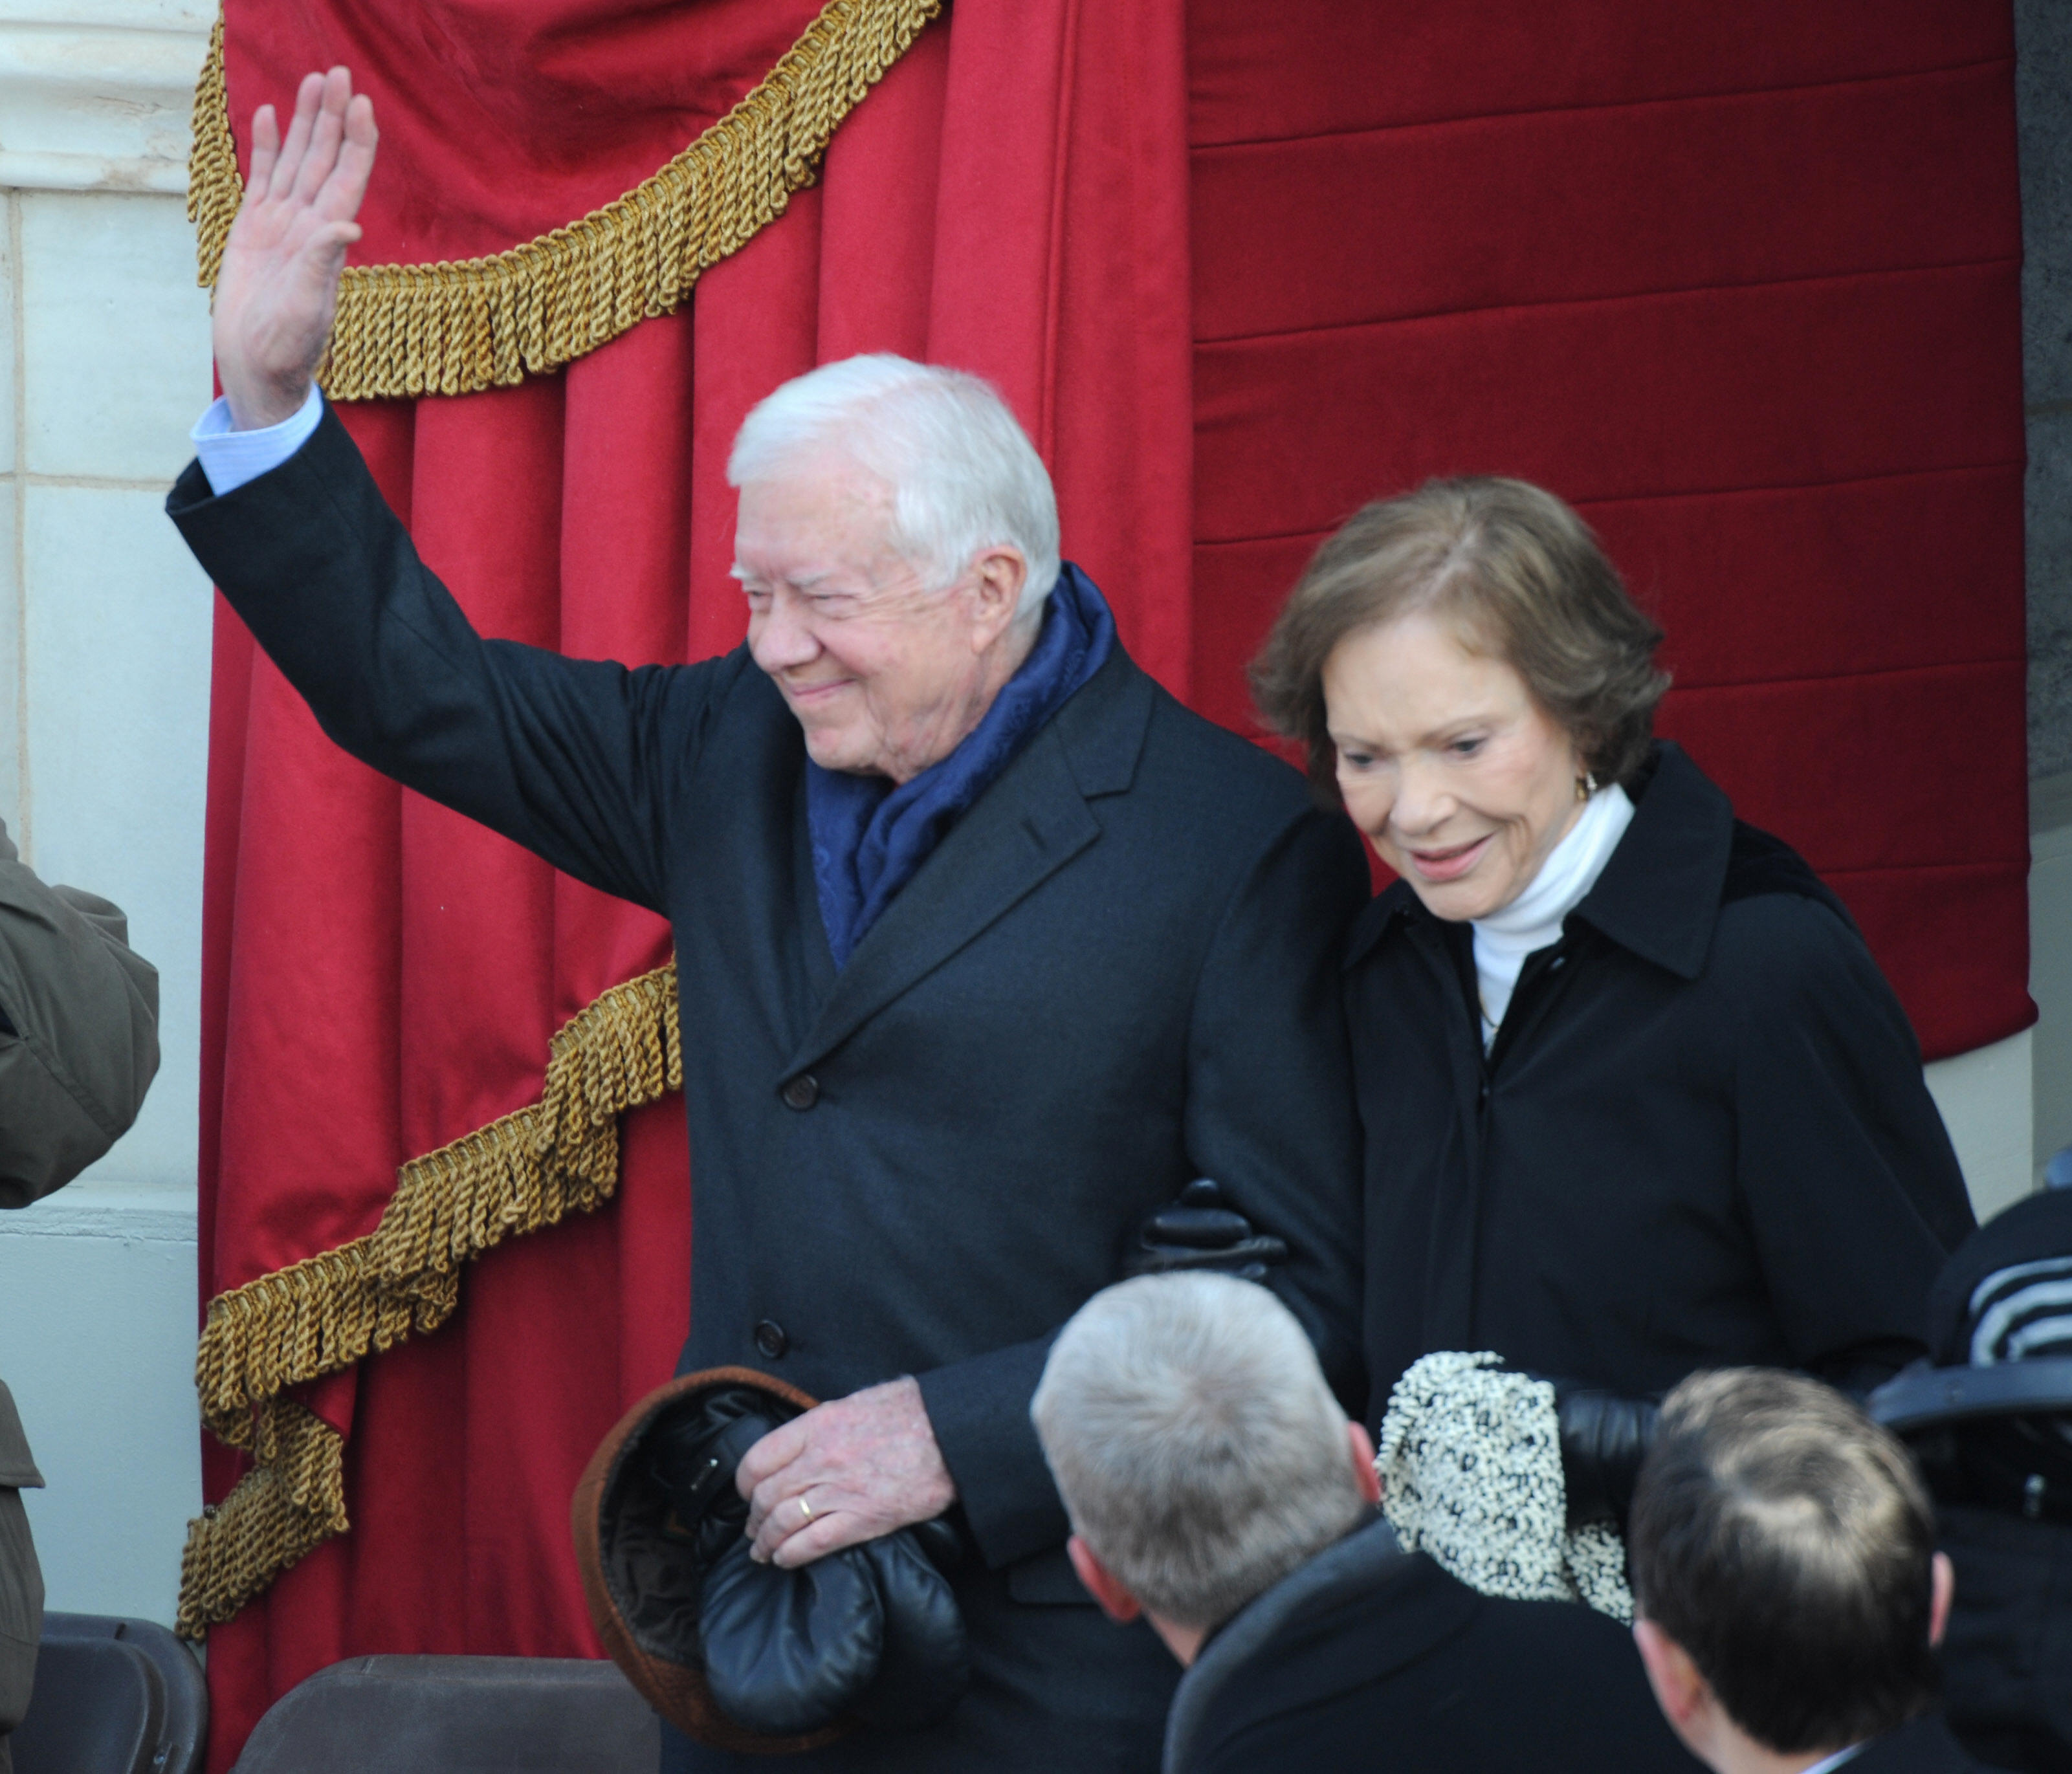 Jimmy Carter and wife Rosalyn